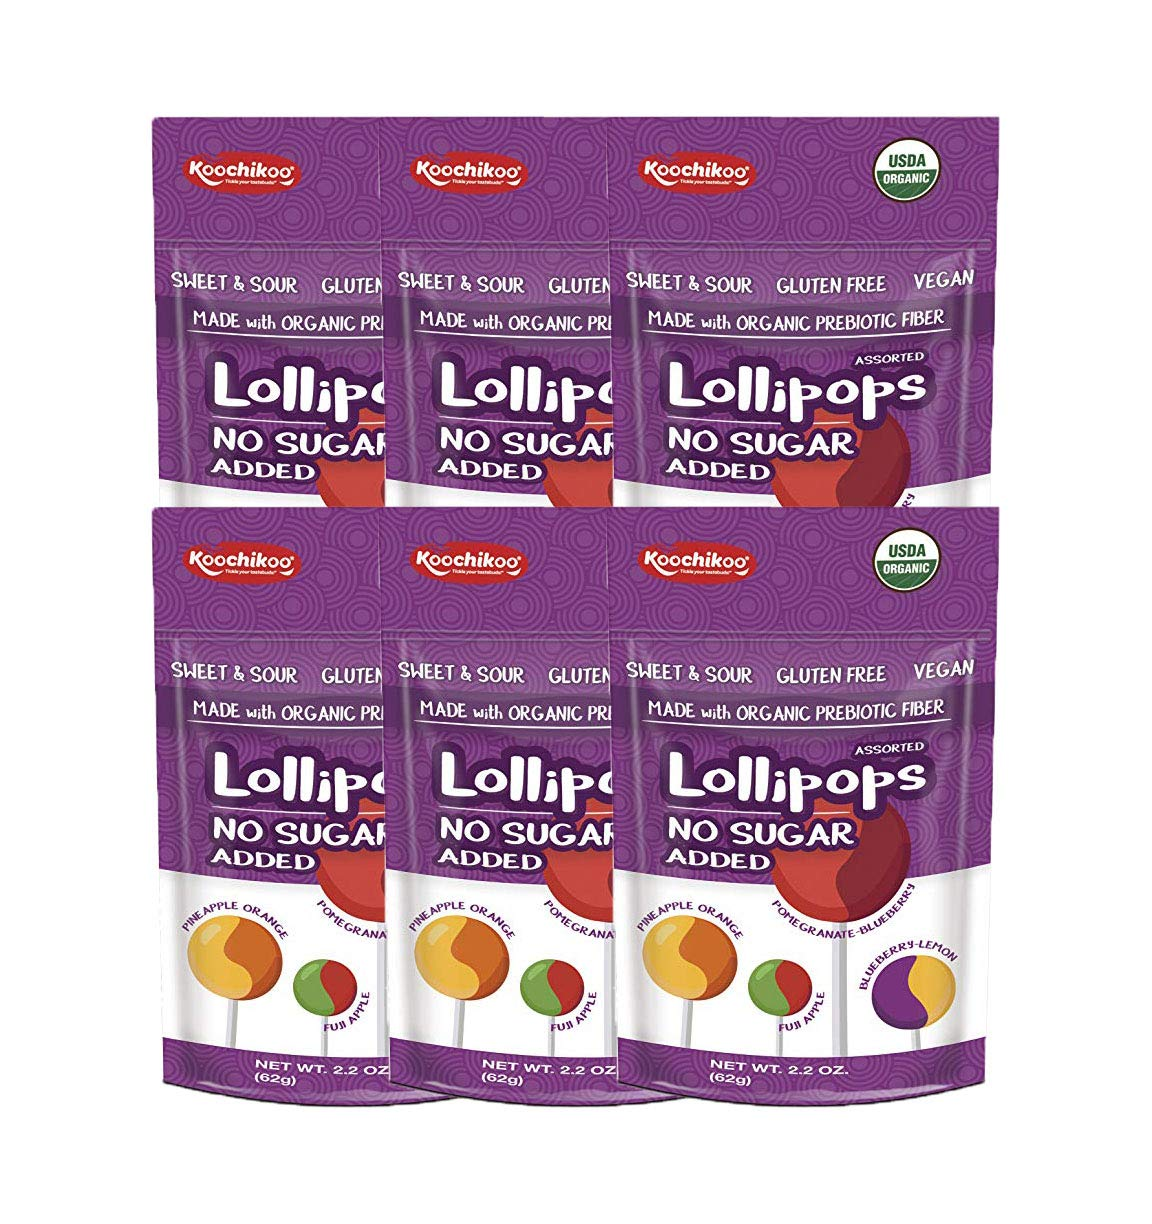 Koochikoo Sugar Free Organic Lollipop Pouch, Delicious Assorted Fruity Flavors, 10 CT (Pack - 6)